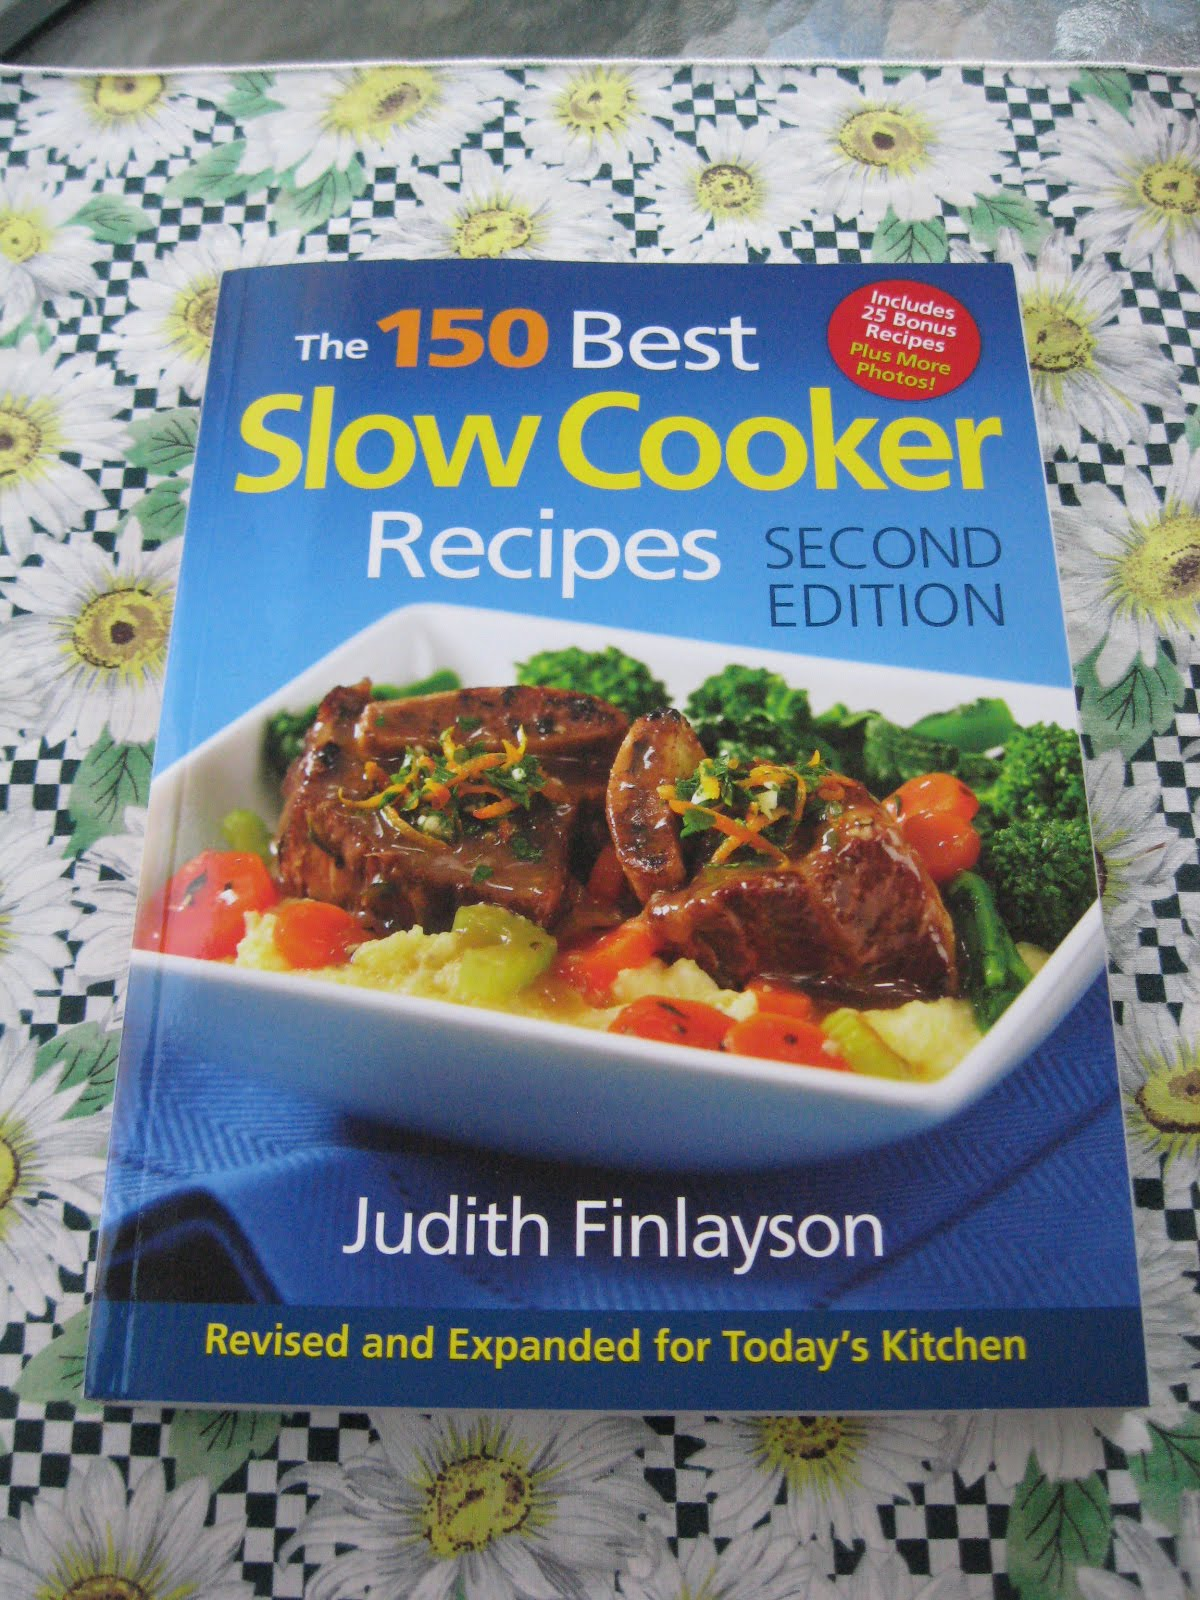 150 Best Da Tarot Cards Images On Pinterest: Barbecue Master: The 150 Best Slow Cooker Recipe Cookbook